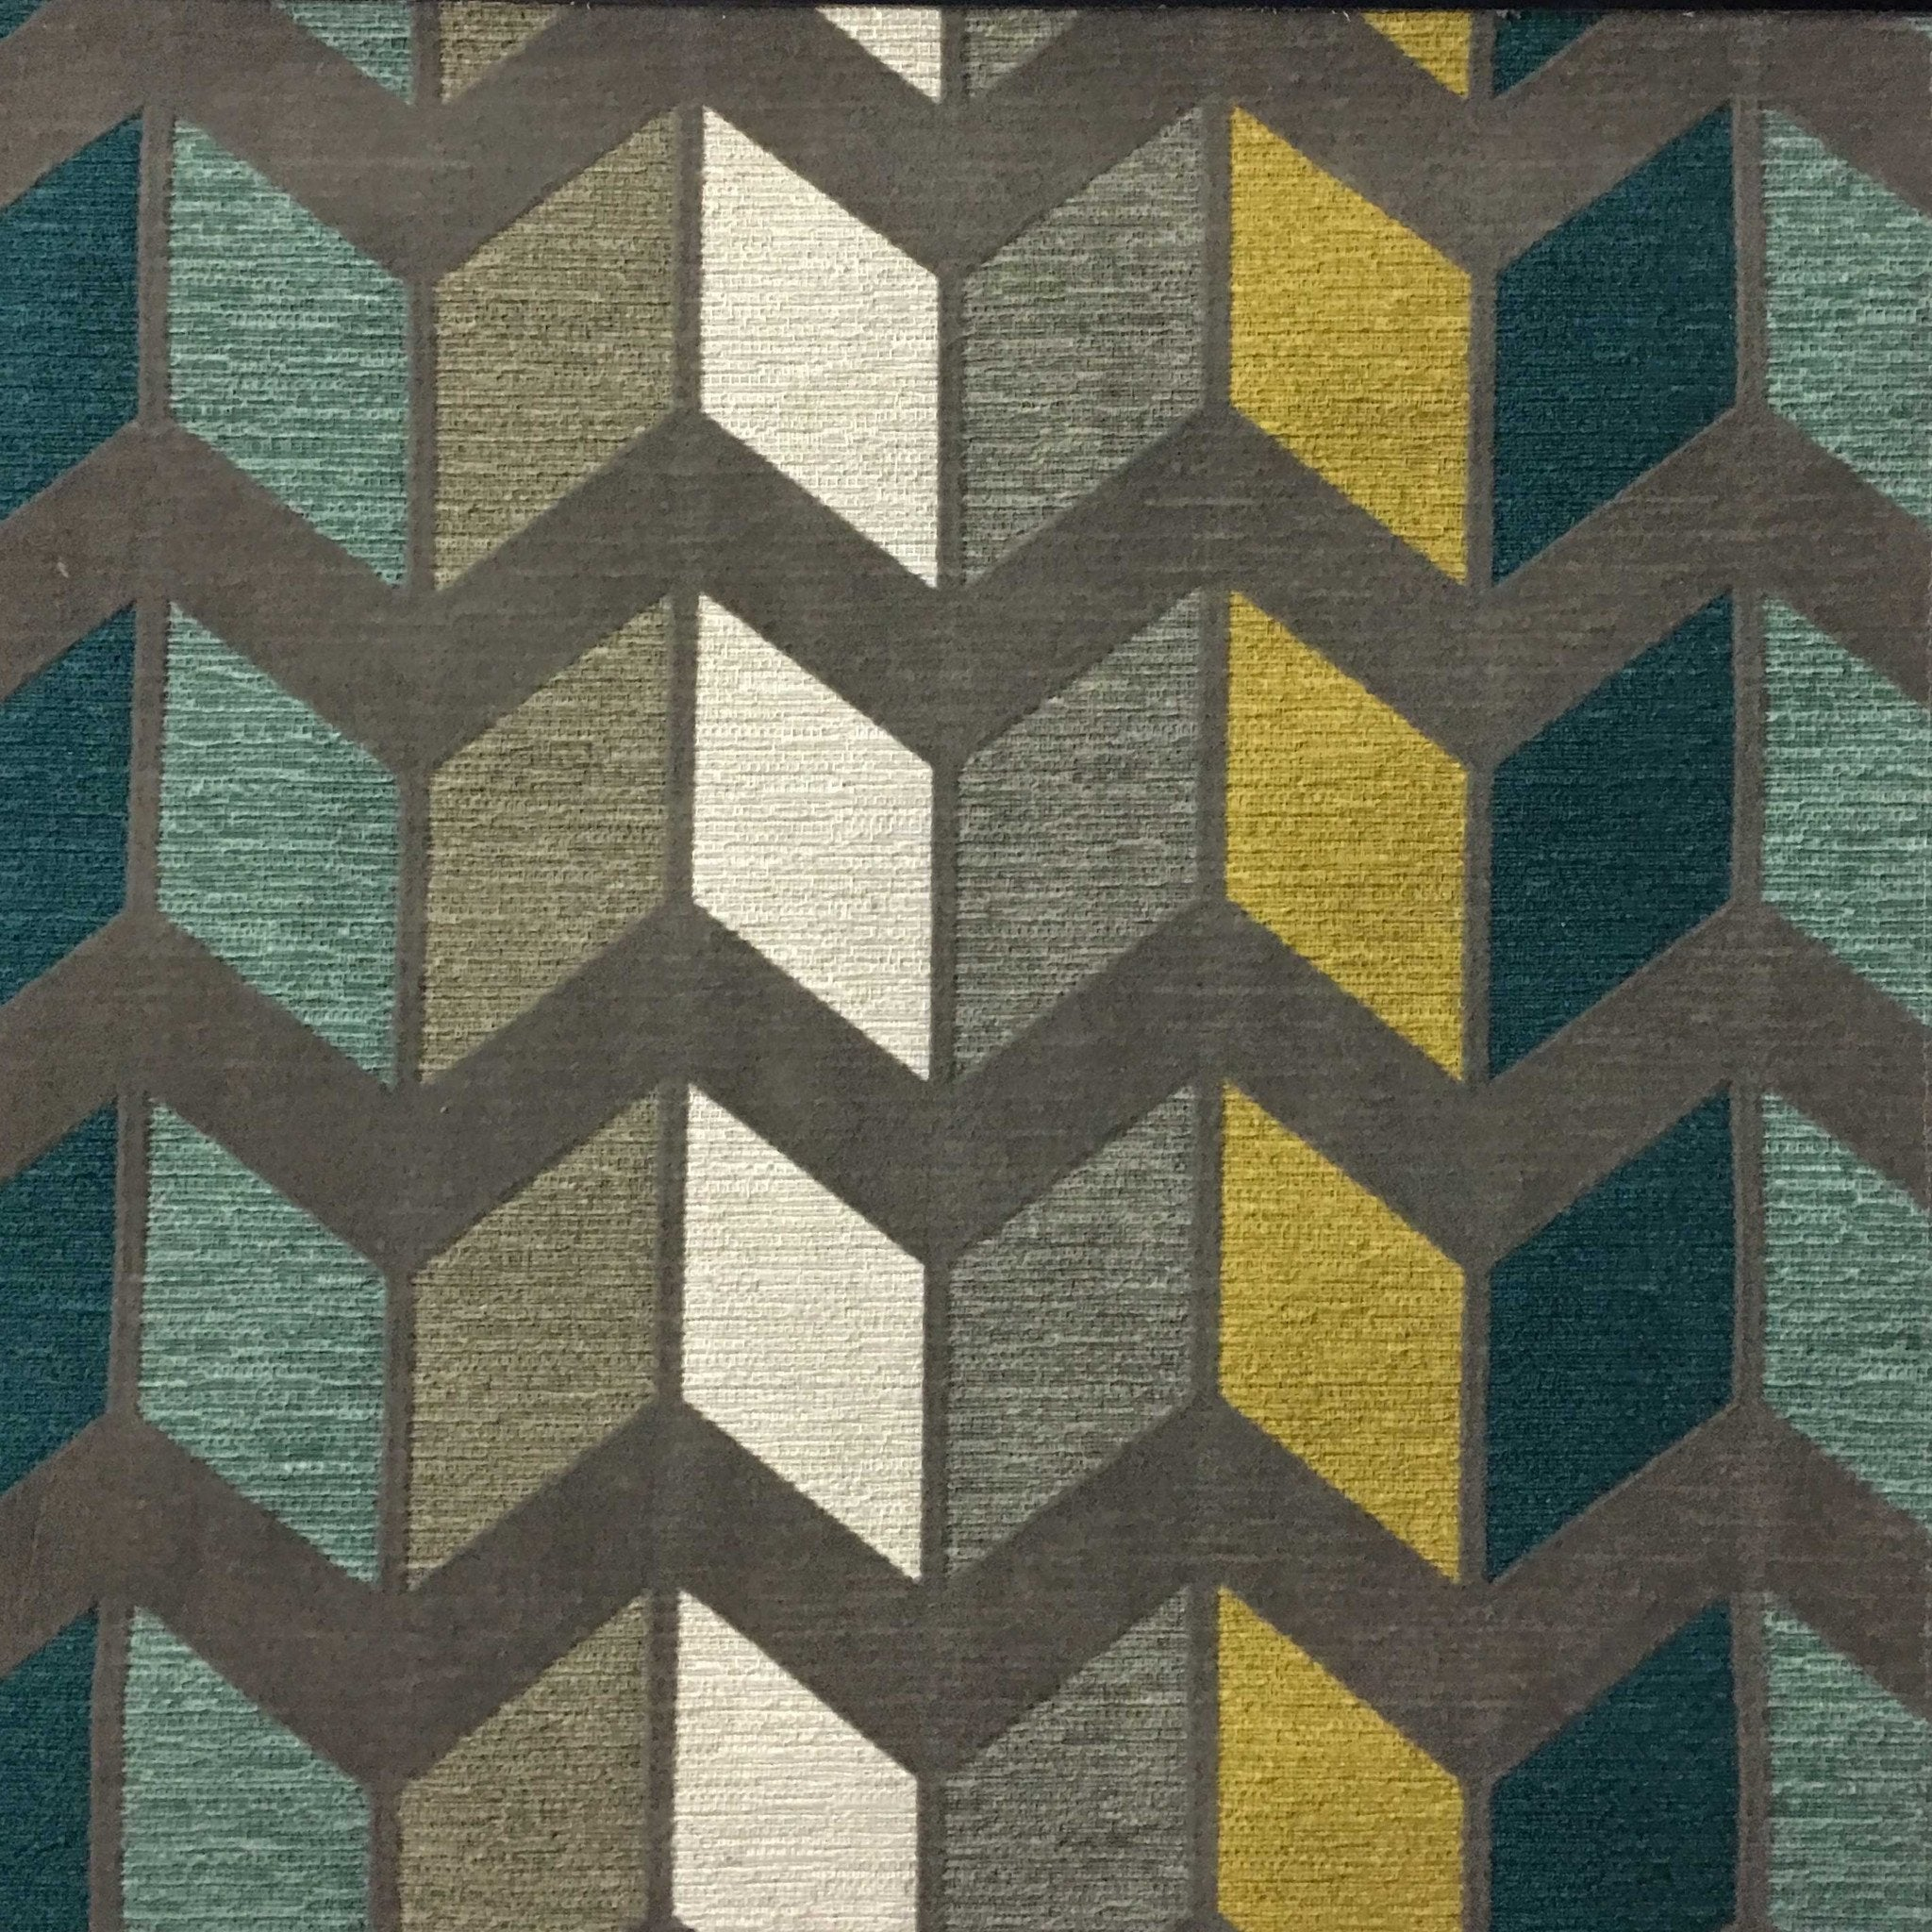 Astounding Details About Ziba Chevron Pattern Modern Texture Cotton Blend Upholstery Fabric By The Yard Interior Design Ideas Inamawefileorg